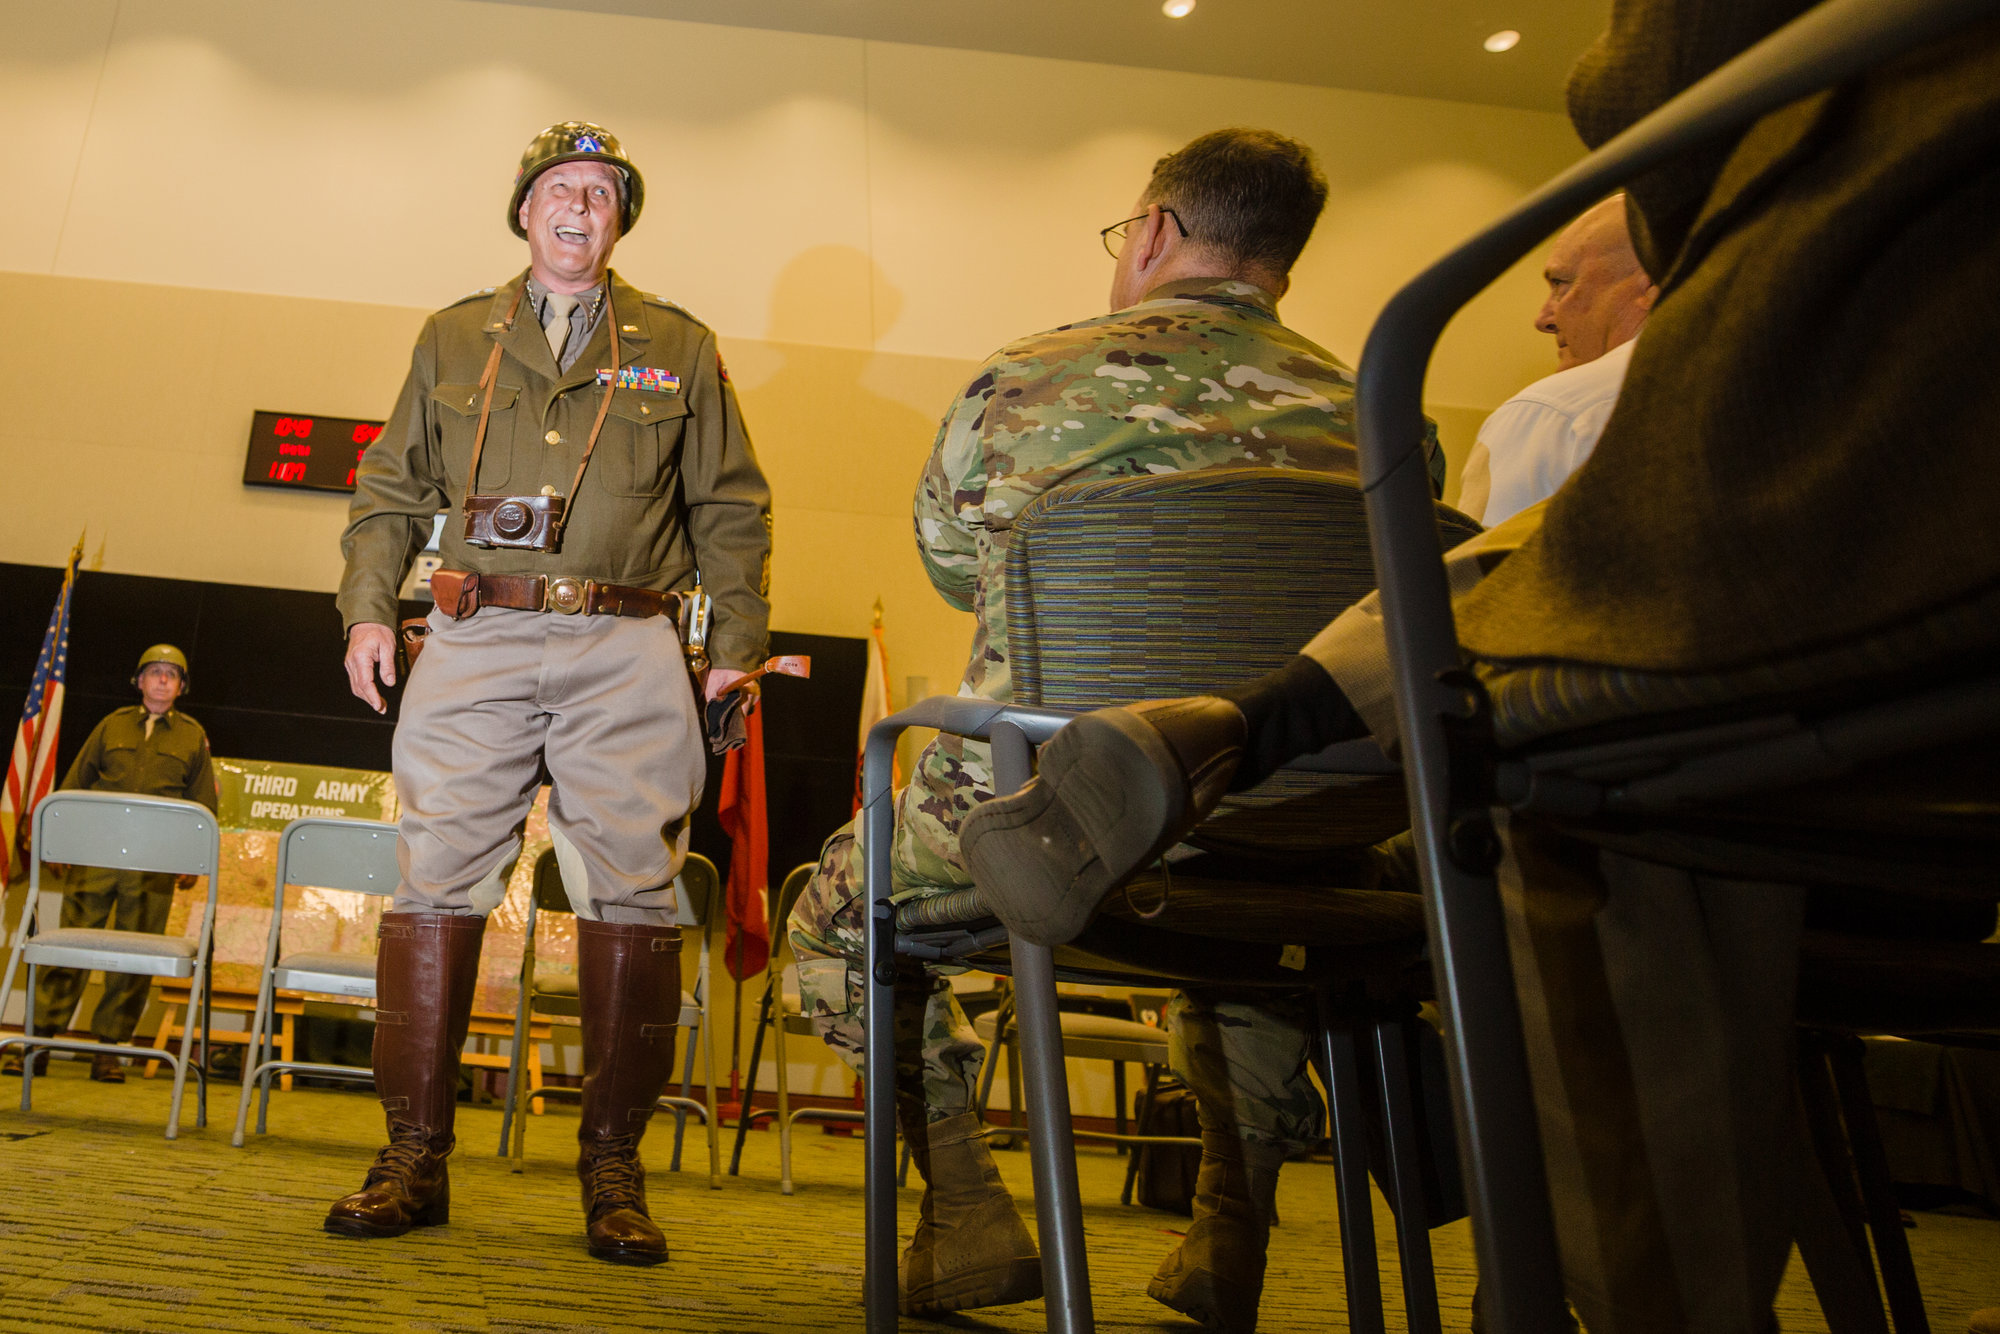 Gen. Patton, portrayed by Denny G. Hair, speaks with attendees at the celebration of Third Army's 100th birthday.